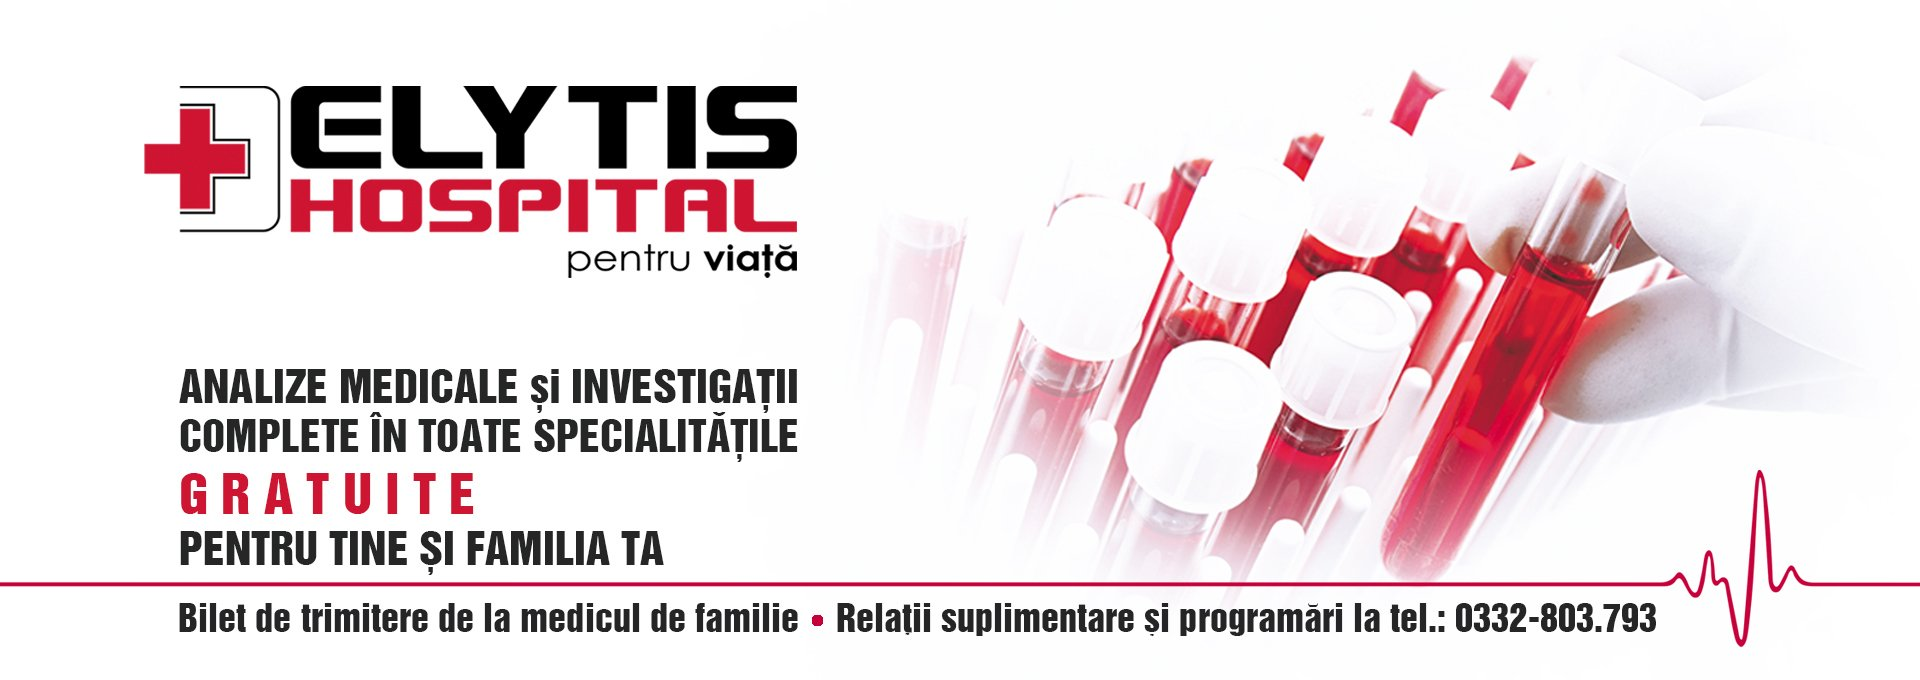 02.-ELYTIS-analize-medicale-www-new-21.09.2016-1